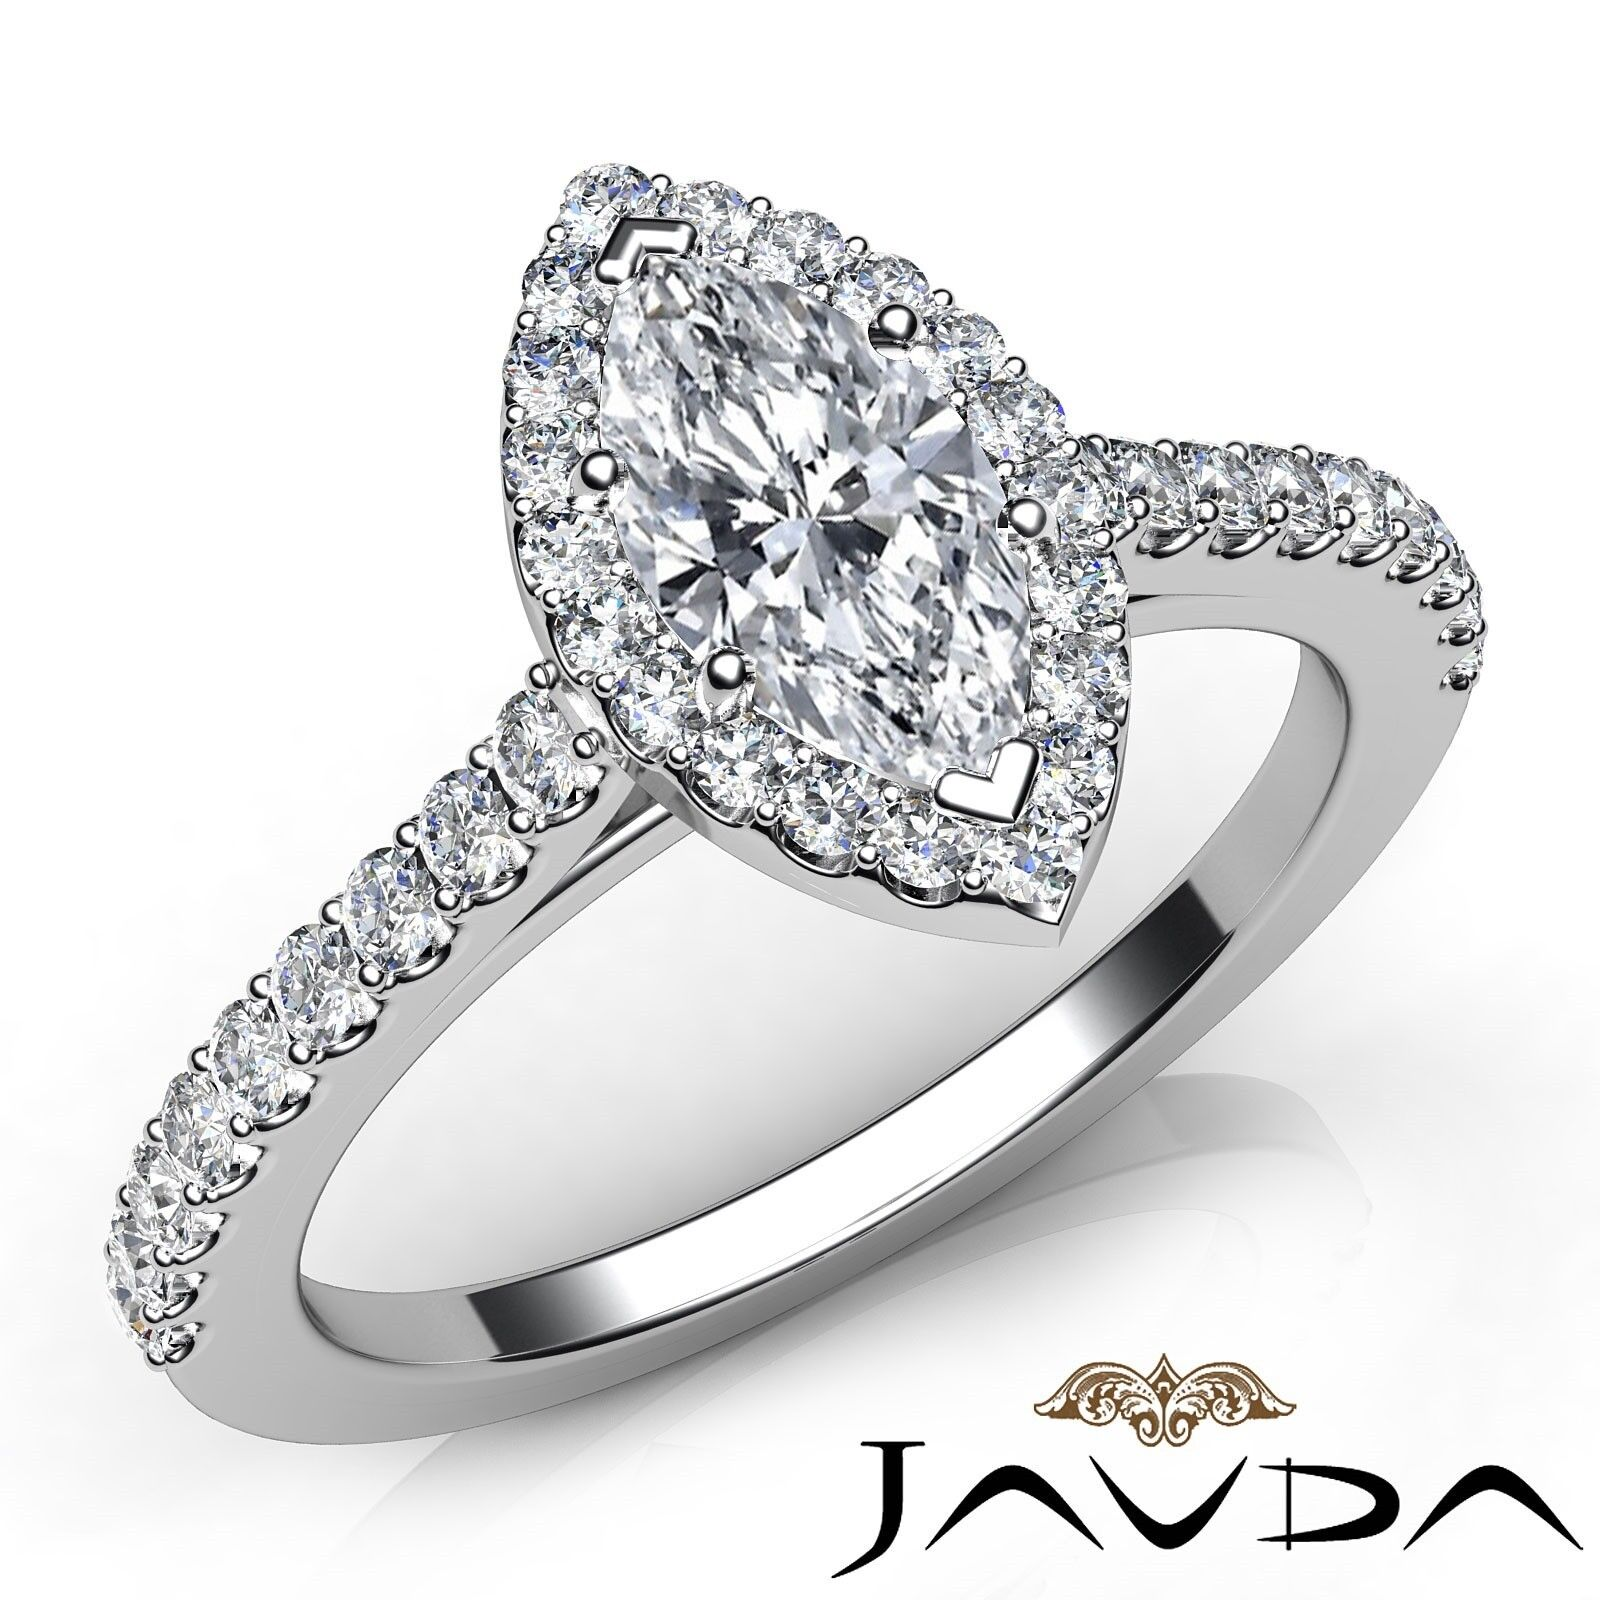 1.3ct Halo Pave Side-Stone Marquise Diamond Engagement Ring GIA H-SI1 White Gold